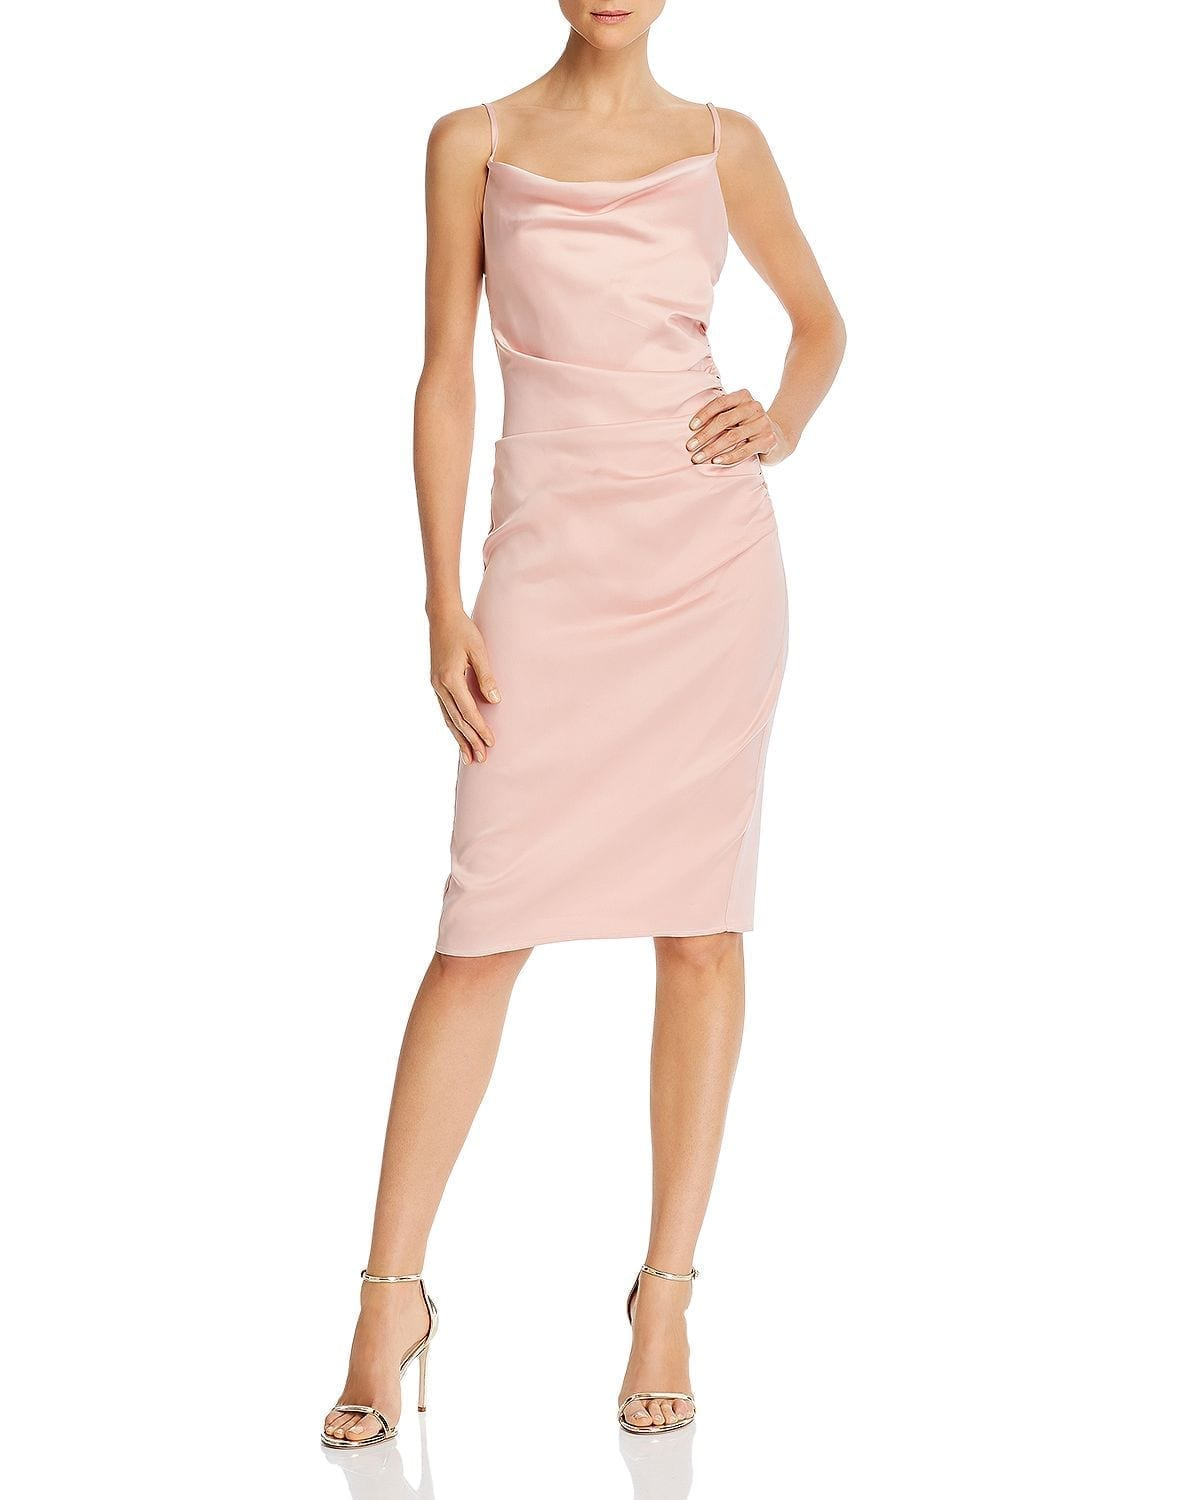 LAUNDRY BY SHELLI SEGAL Ruched Satin Sheath Dress